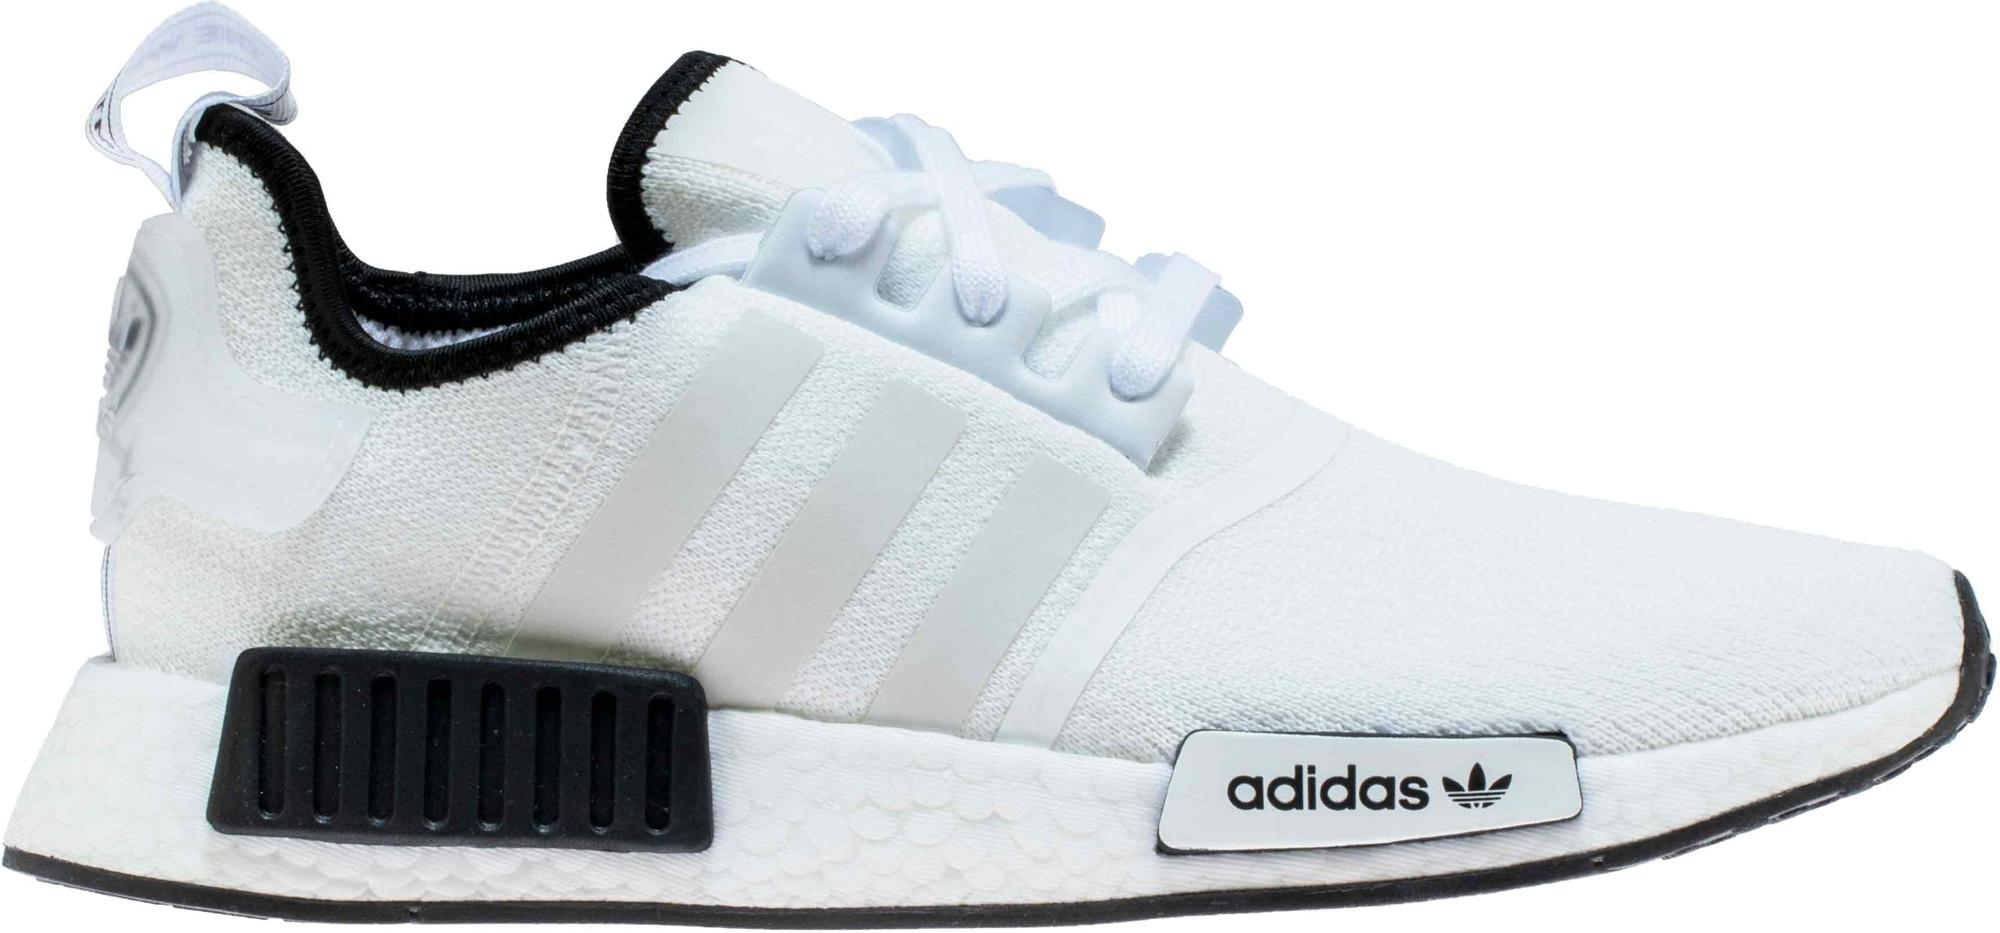 Adidas Nmd R1 Cloud White Core Black For Men Save 13 Lyst